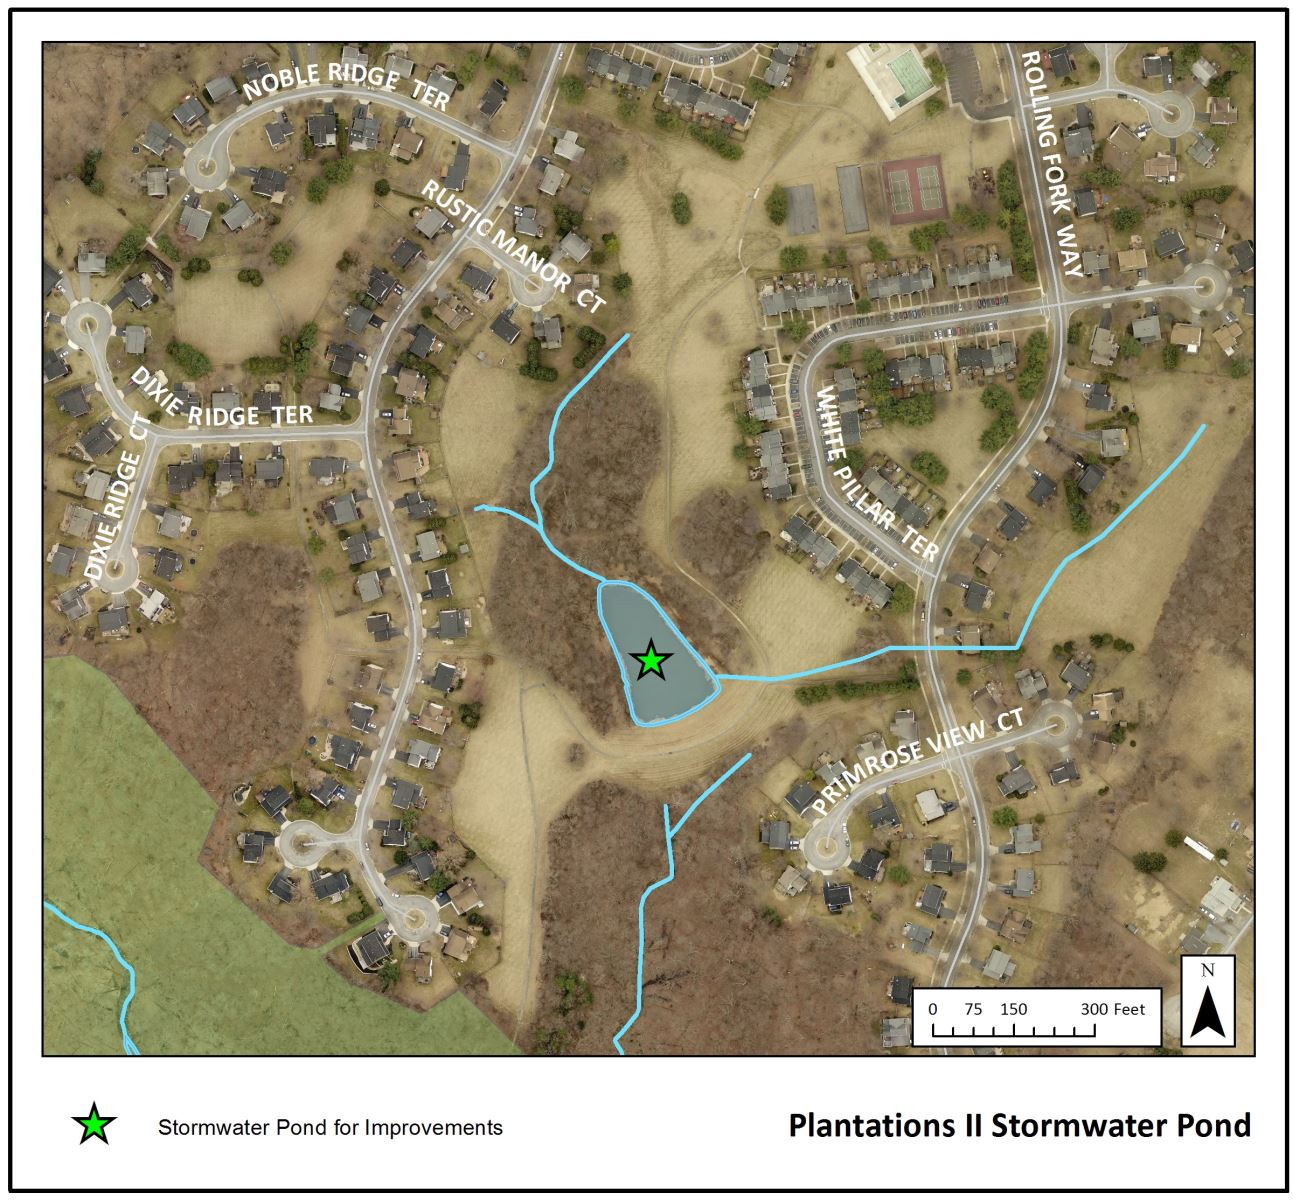 Plantations II Stormwater Pond Map